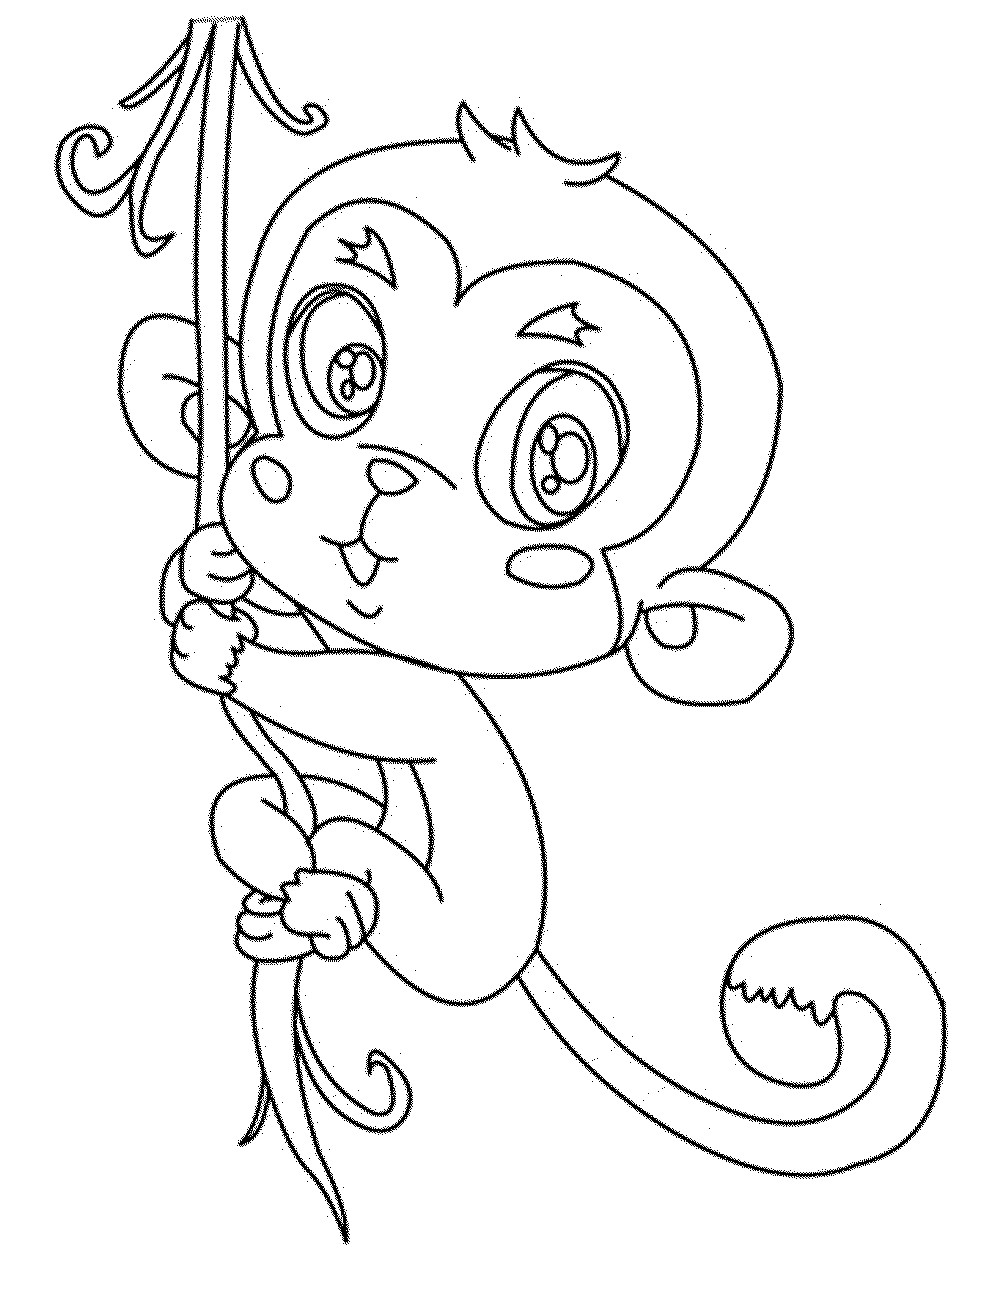 1000x1291 Unlock Coloring Pages Of Cute Baby Monkeys Get This Monkey